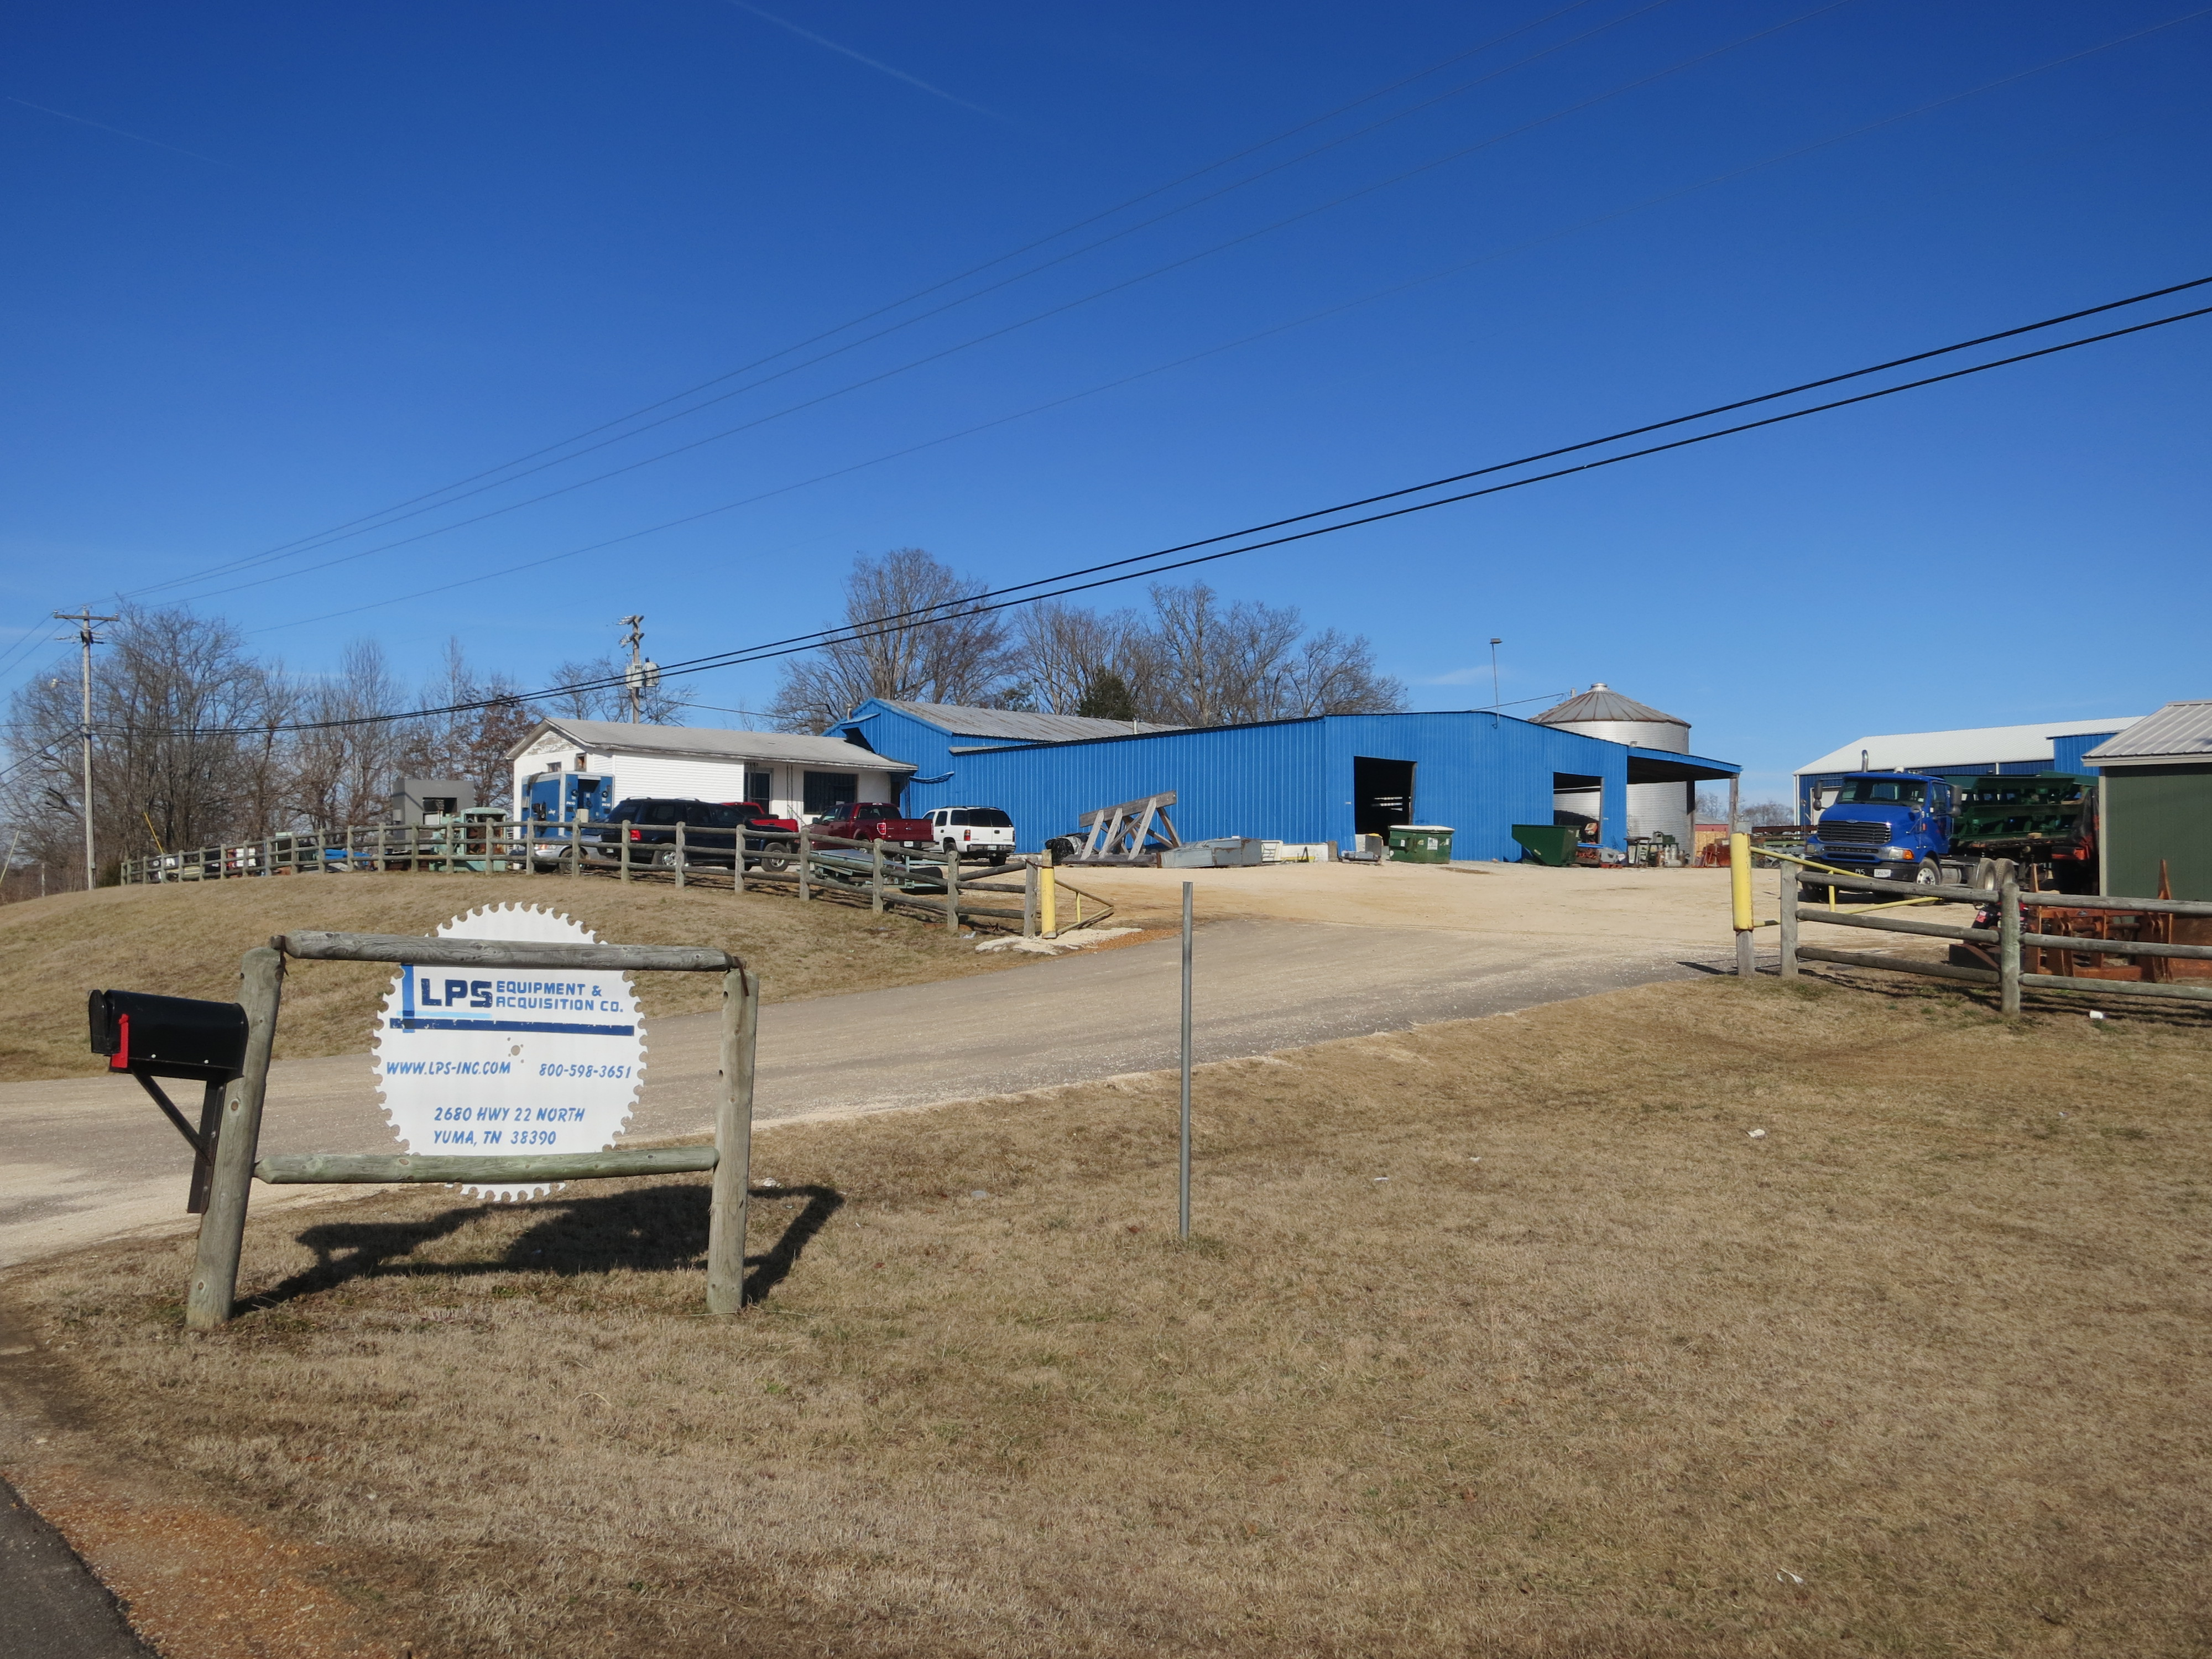 Tennessee carroll county clarksburg - Lps Equipment And Acquisition Company Is Located At 2680 Highway 22 North The Company Specializes In Pallet And Sawmill Equipment